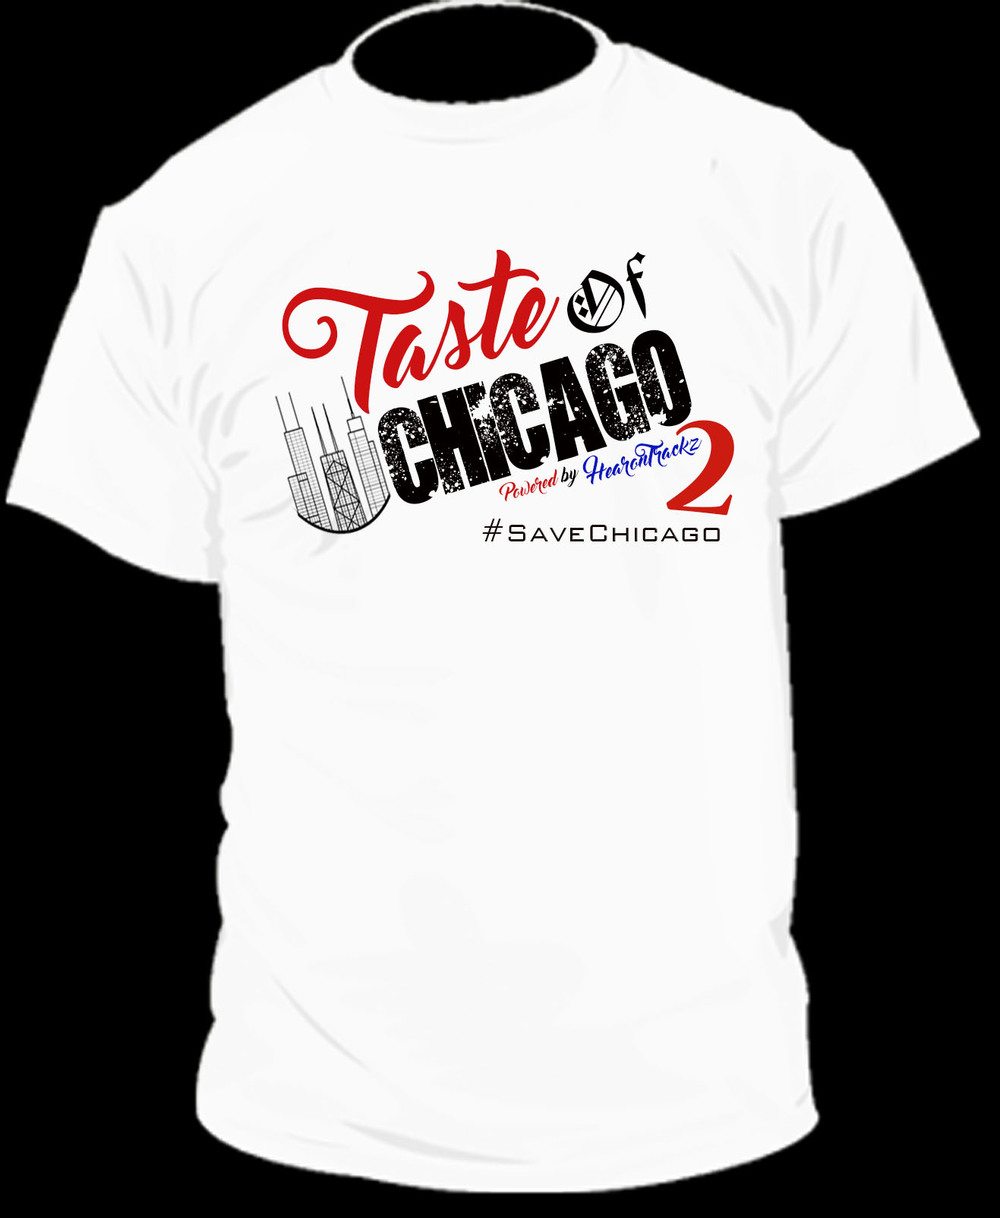 TASTE OF CHICAGO 2 shirtfn.jpg